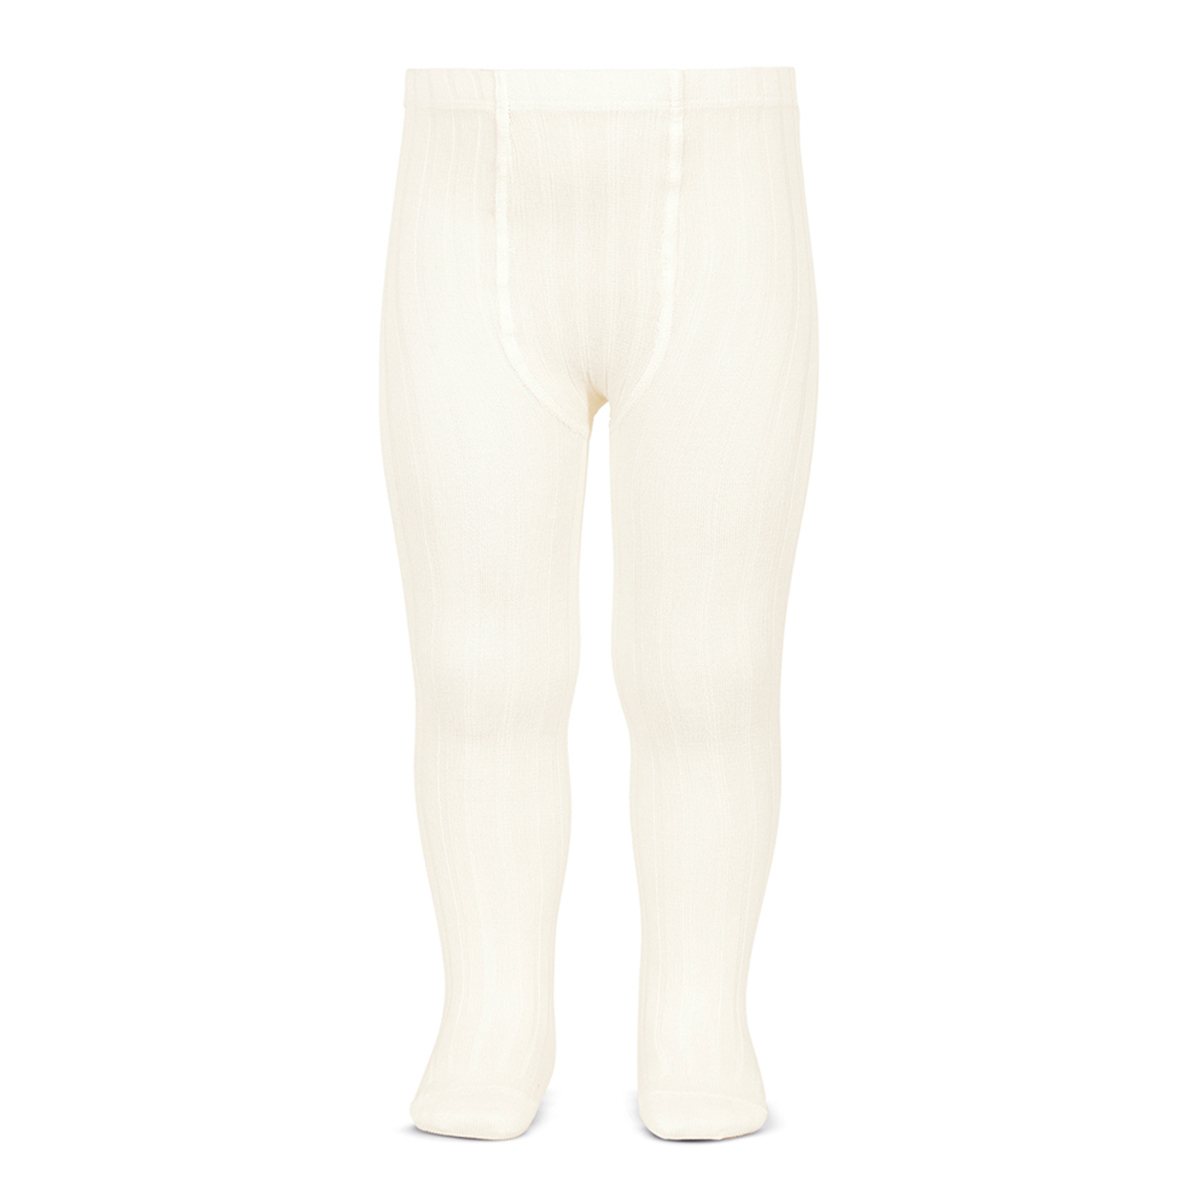 Condor Basic Rib Tights in Cava Ivory